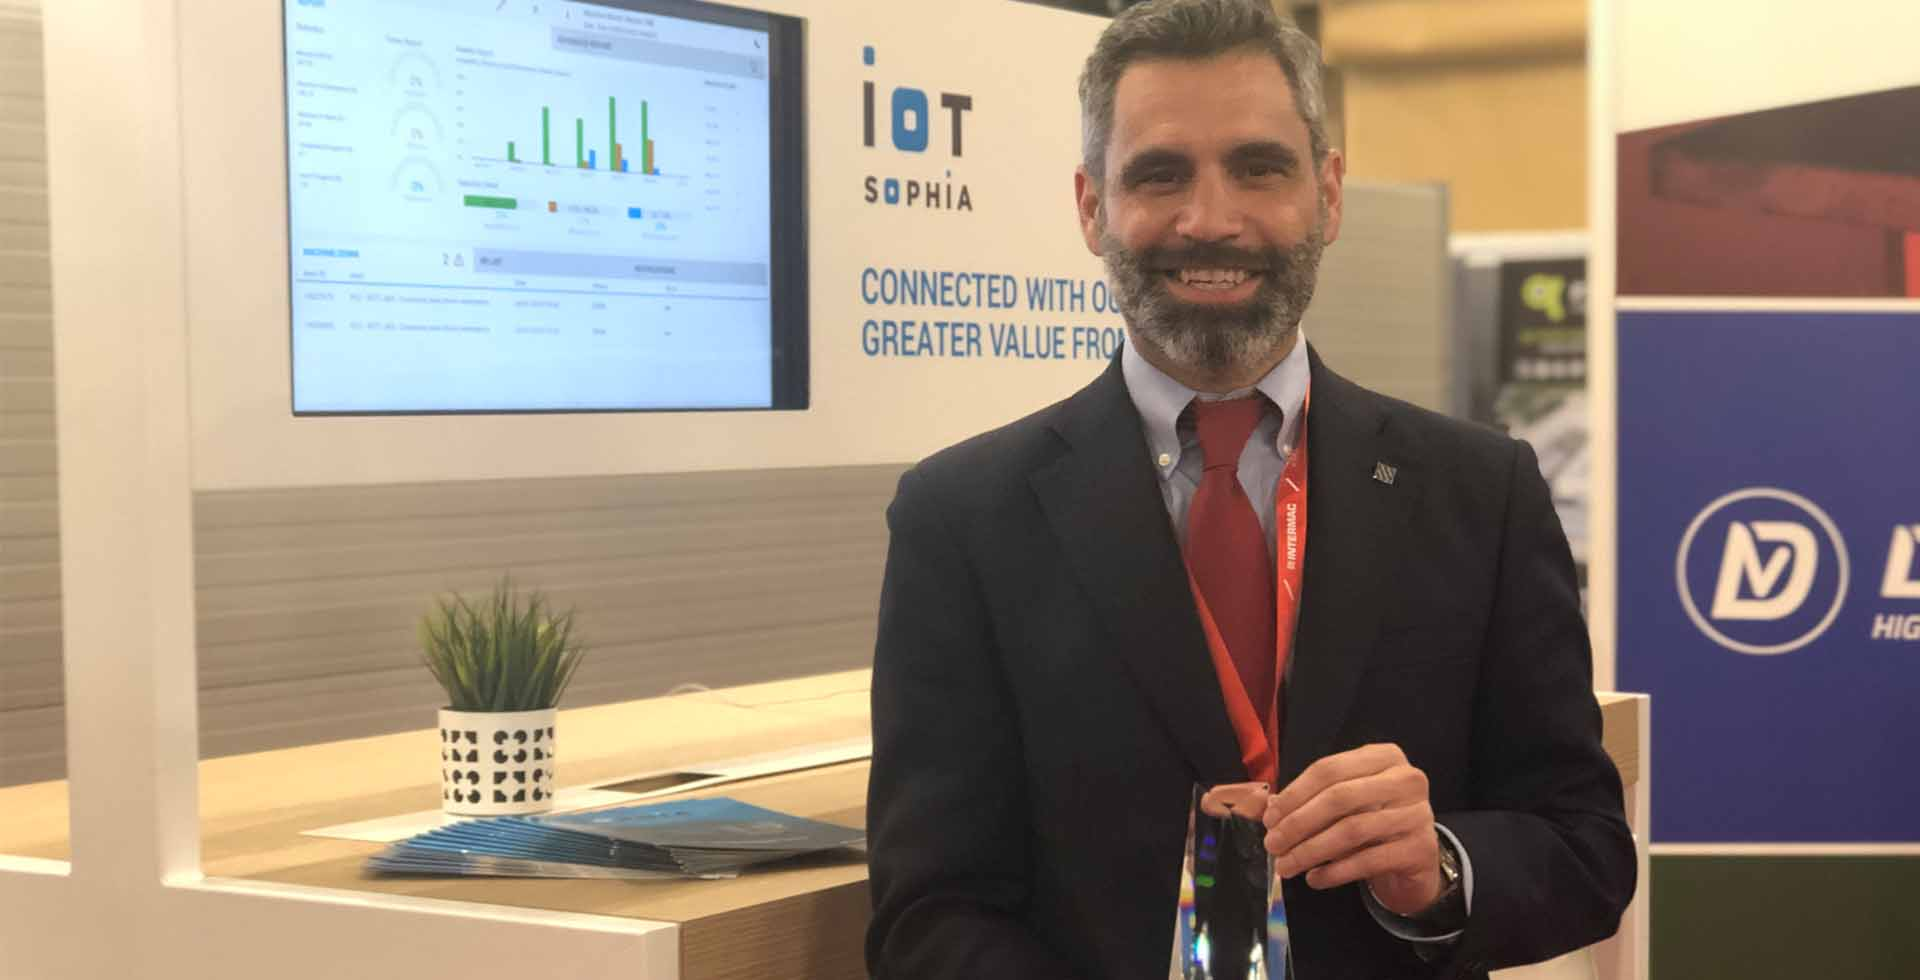 Intermac Wins TISE Best Product Award for SOPHIA IoT